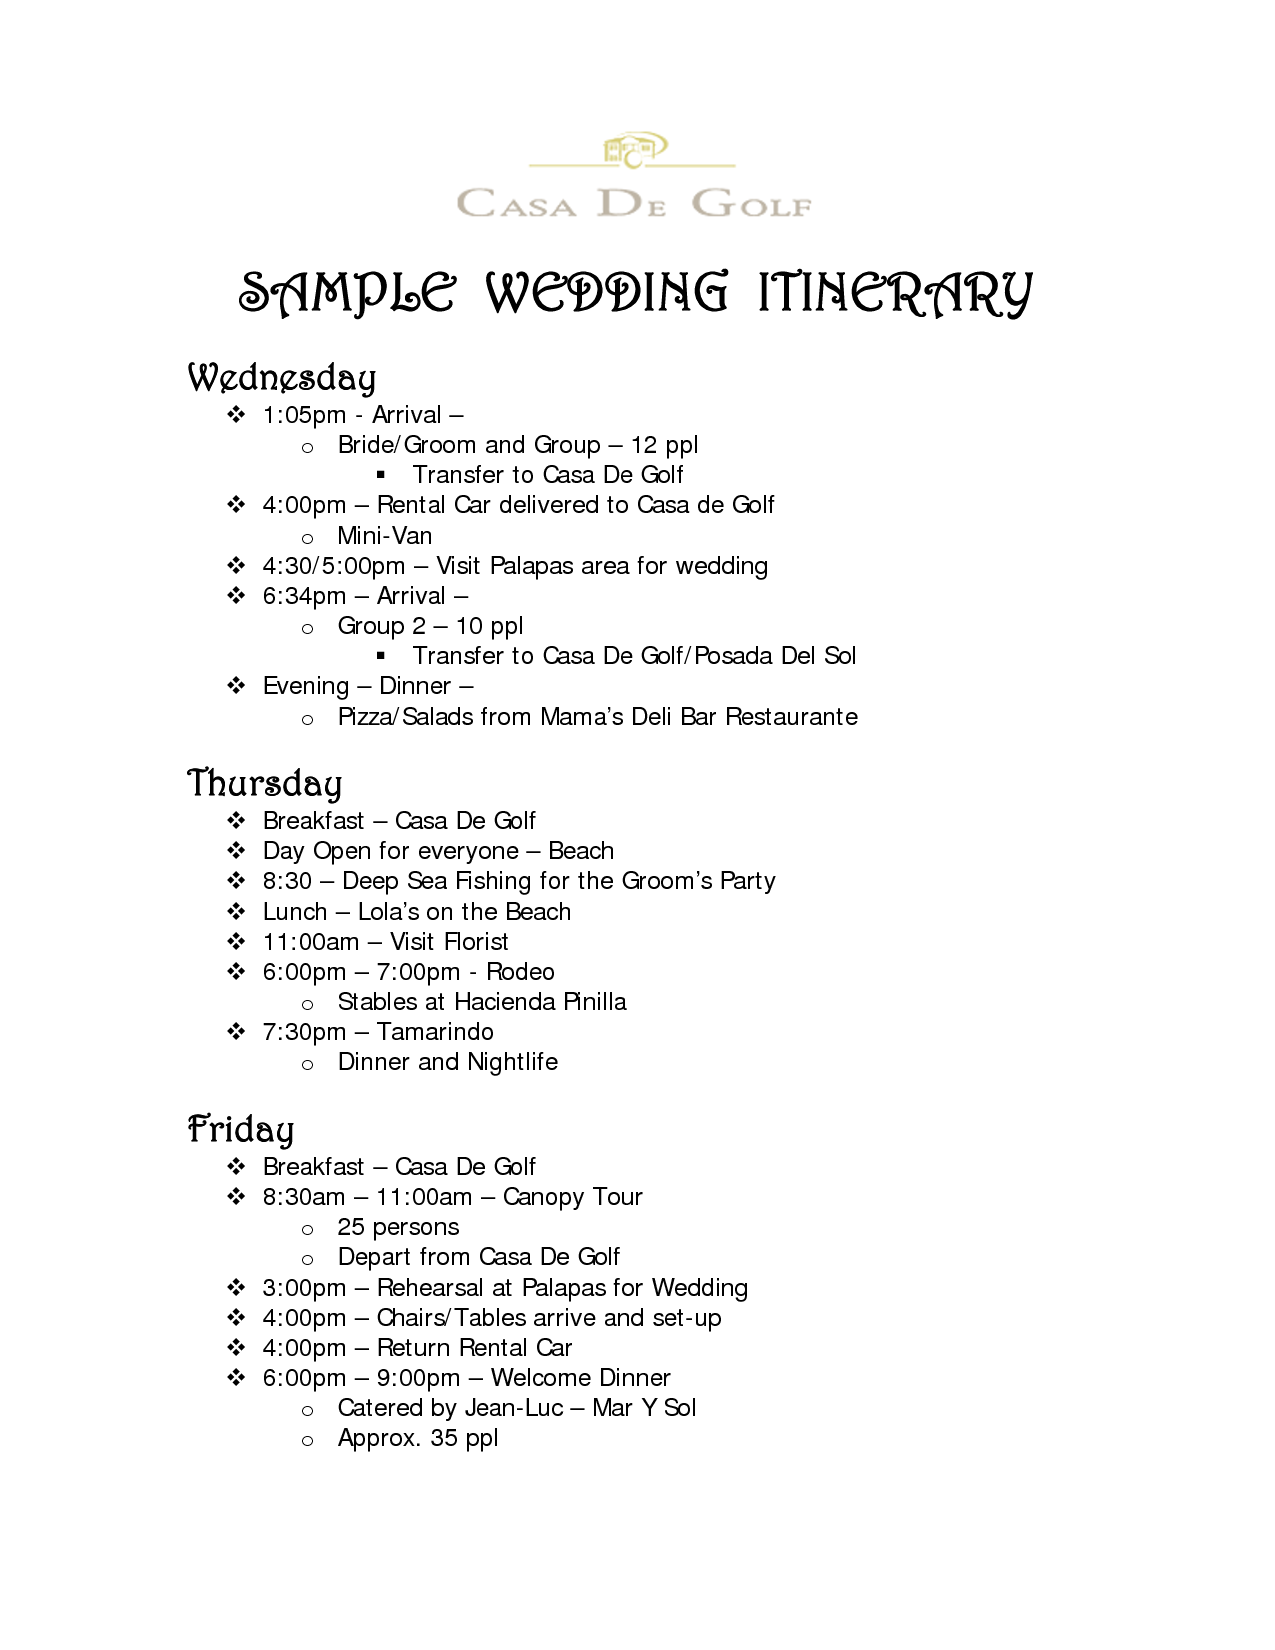 Sample Wedding Itinerary